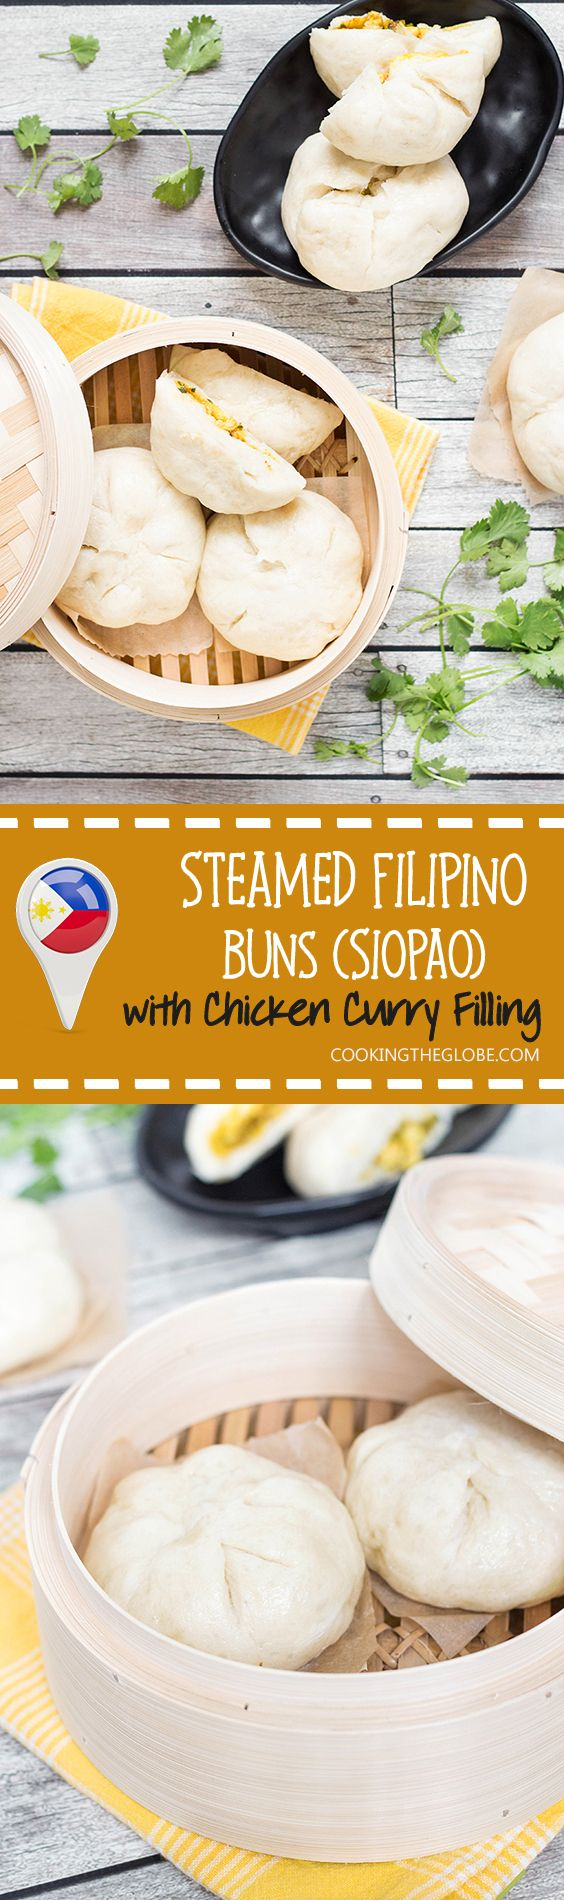 These steamed buns, called Siopao, come from the Philippines. They can be stuffed with anything you want! I made mine with a fantastic chicken curry filling!